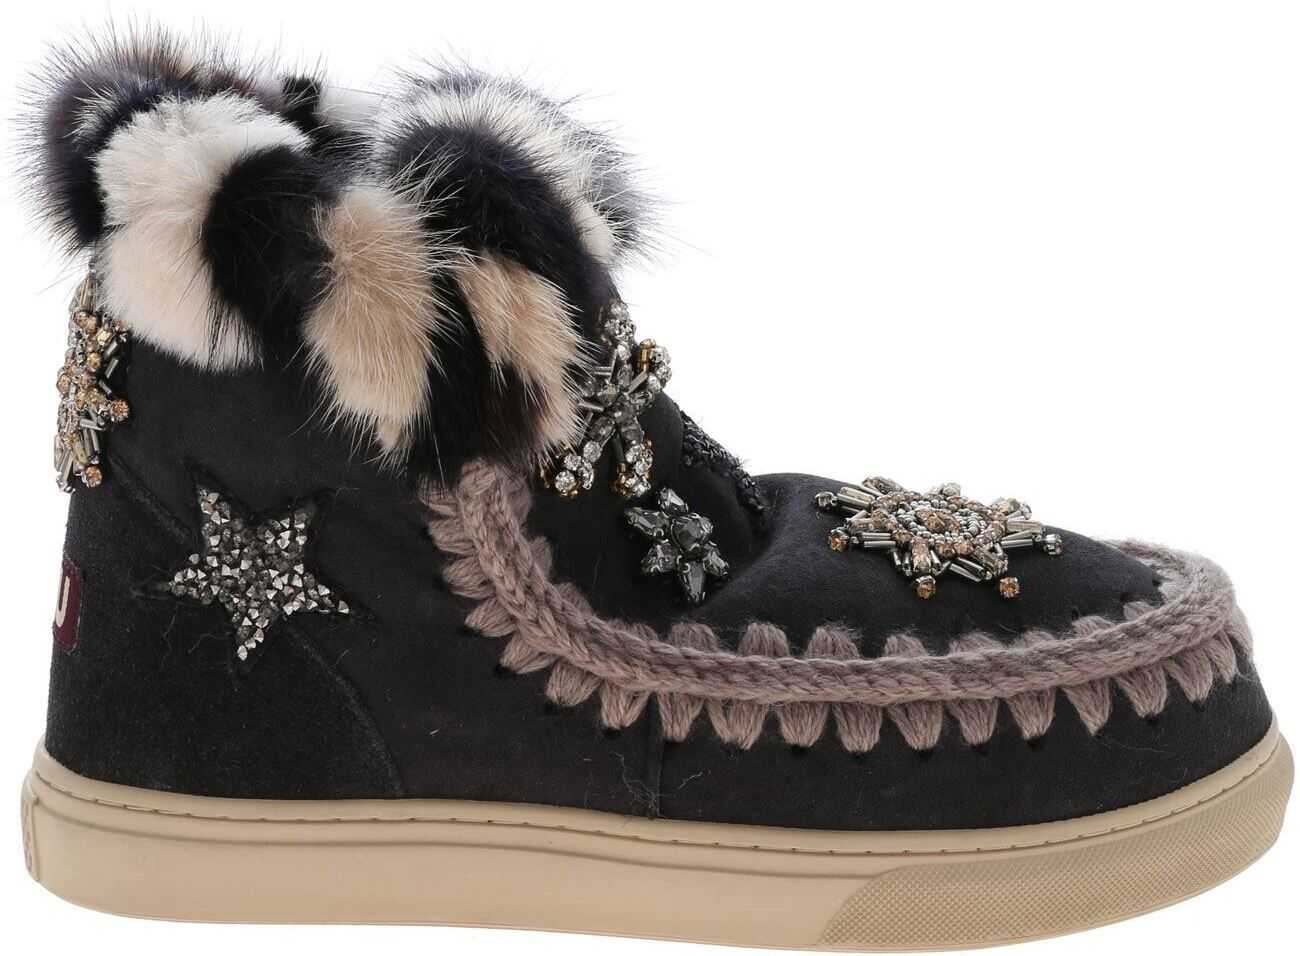 Mou Eskimo Star Patches And Mink Fur Sneakers In Grey MU.FW111006A OFFB Grey imagine b-mall.ro